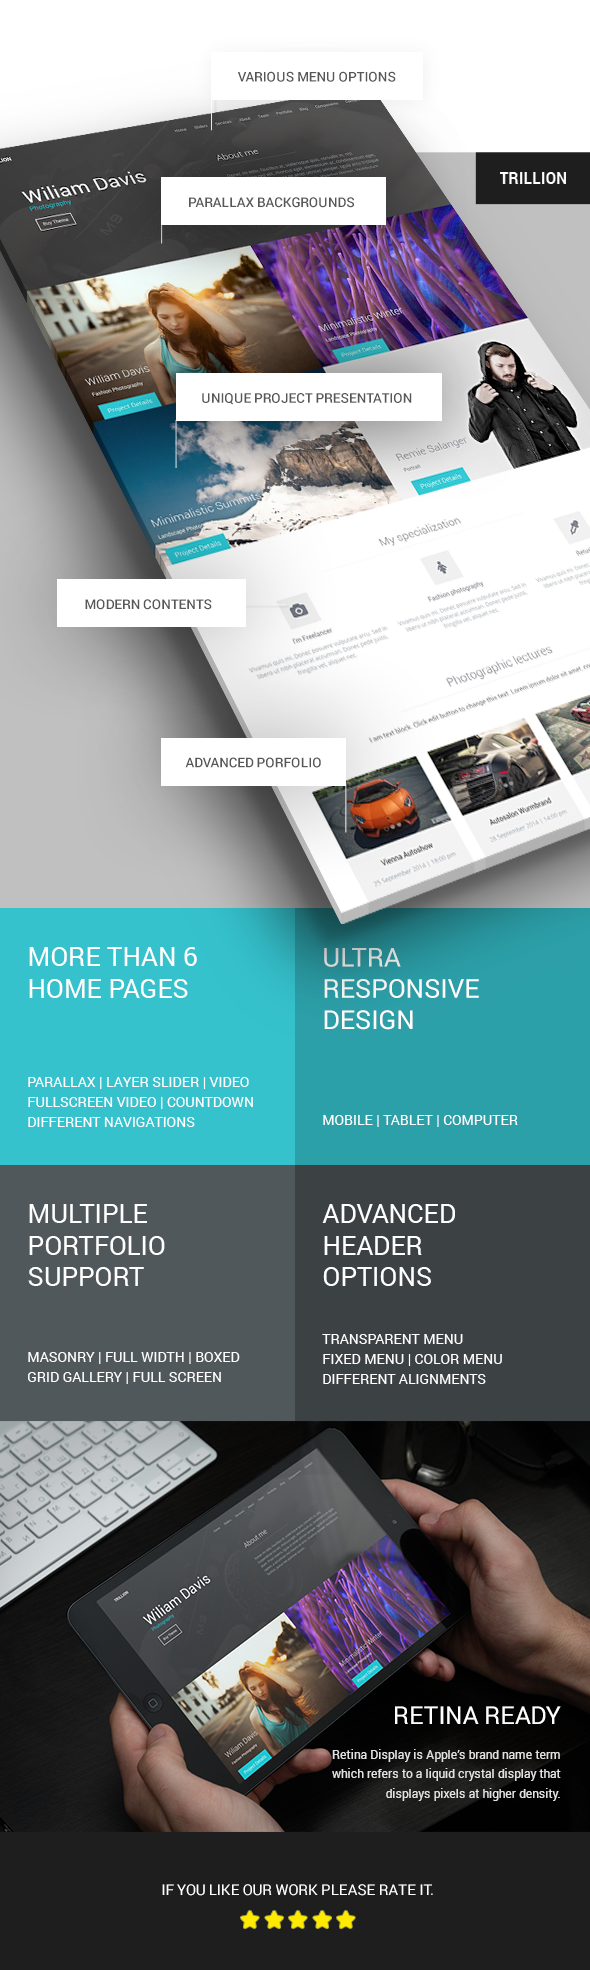 TRILLION - Premium MultiPurpose HTML5 Template